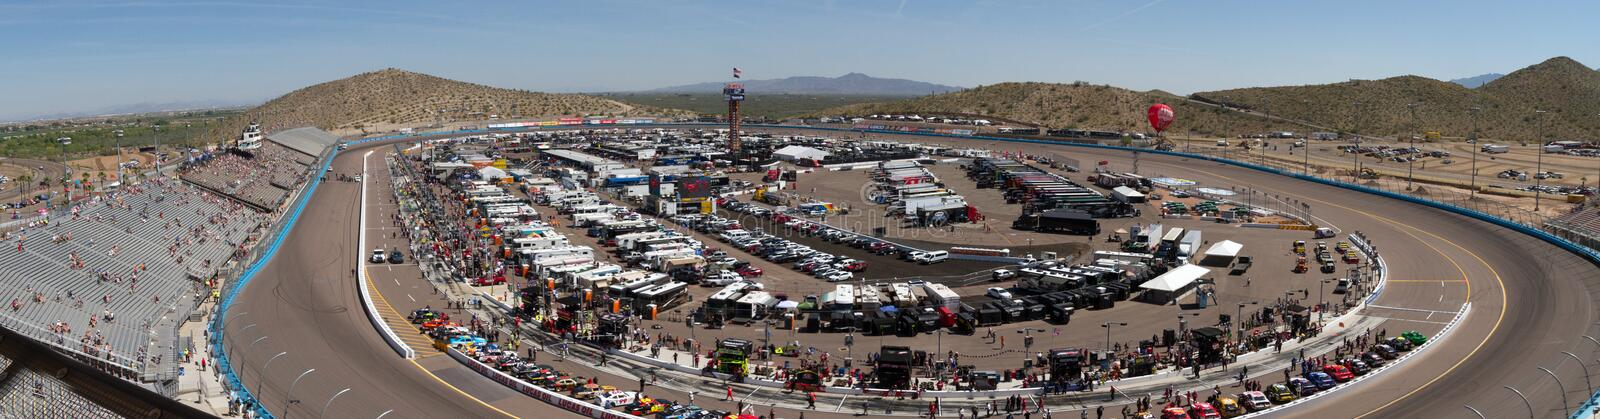 Phoenix International Raceway in Avondale, Arizona royalty free stock image